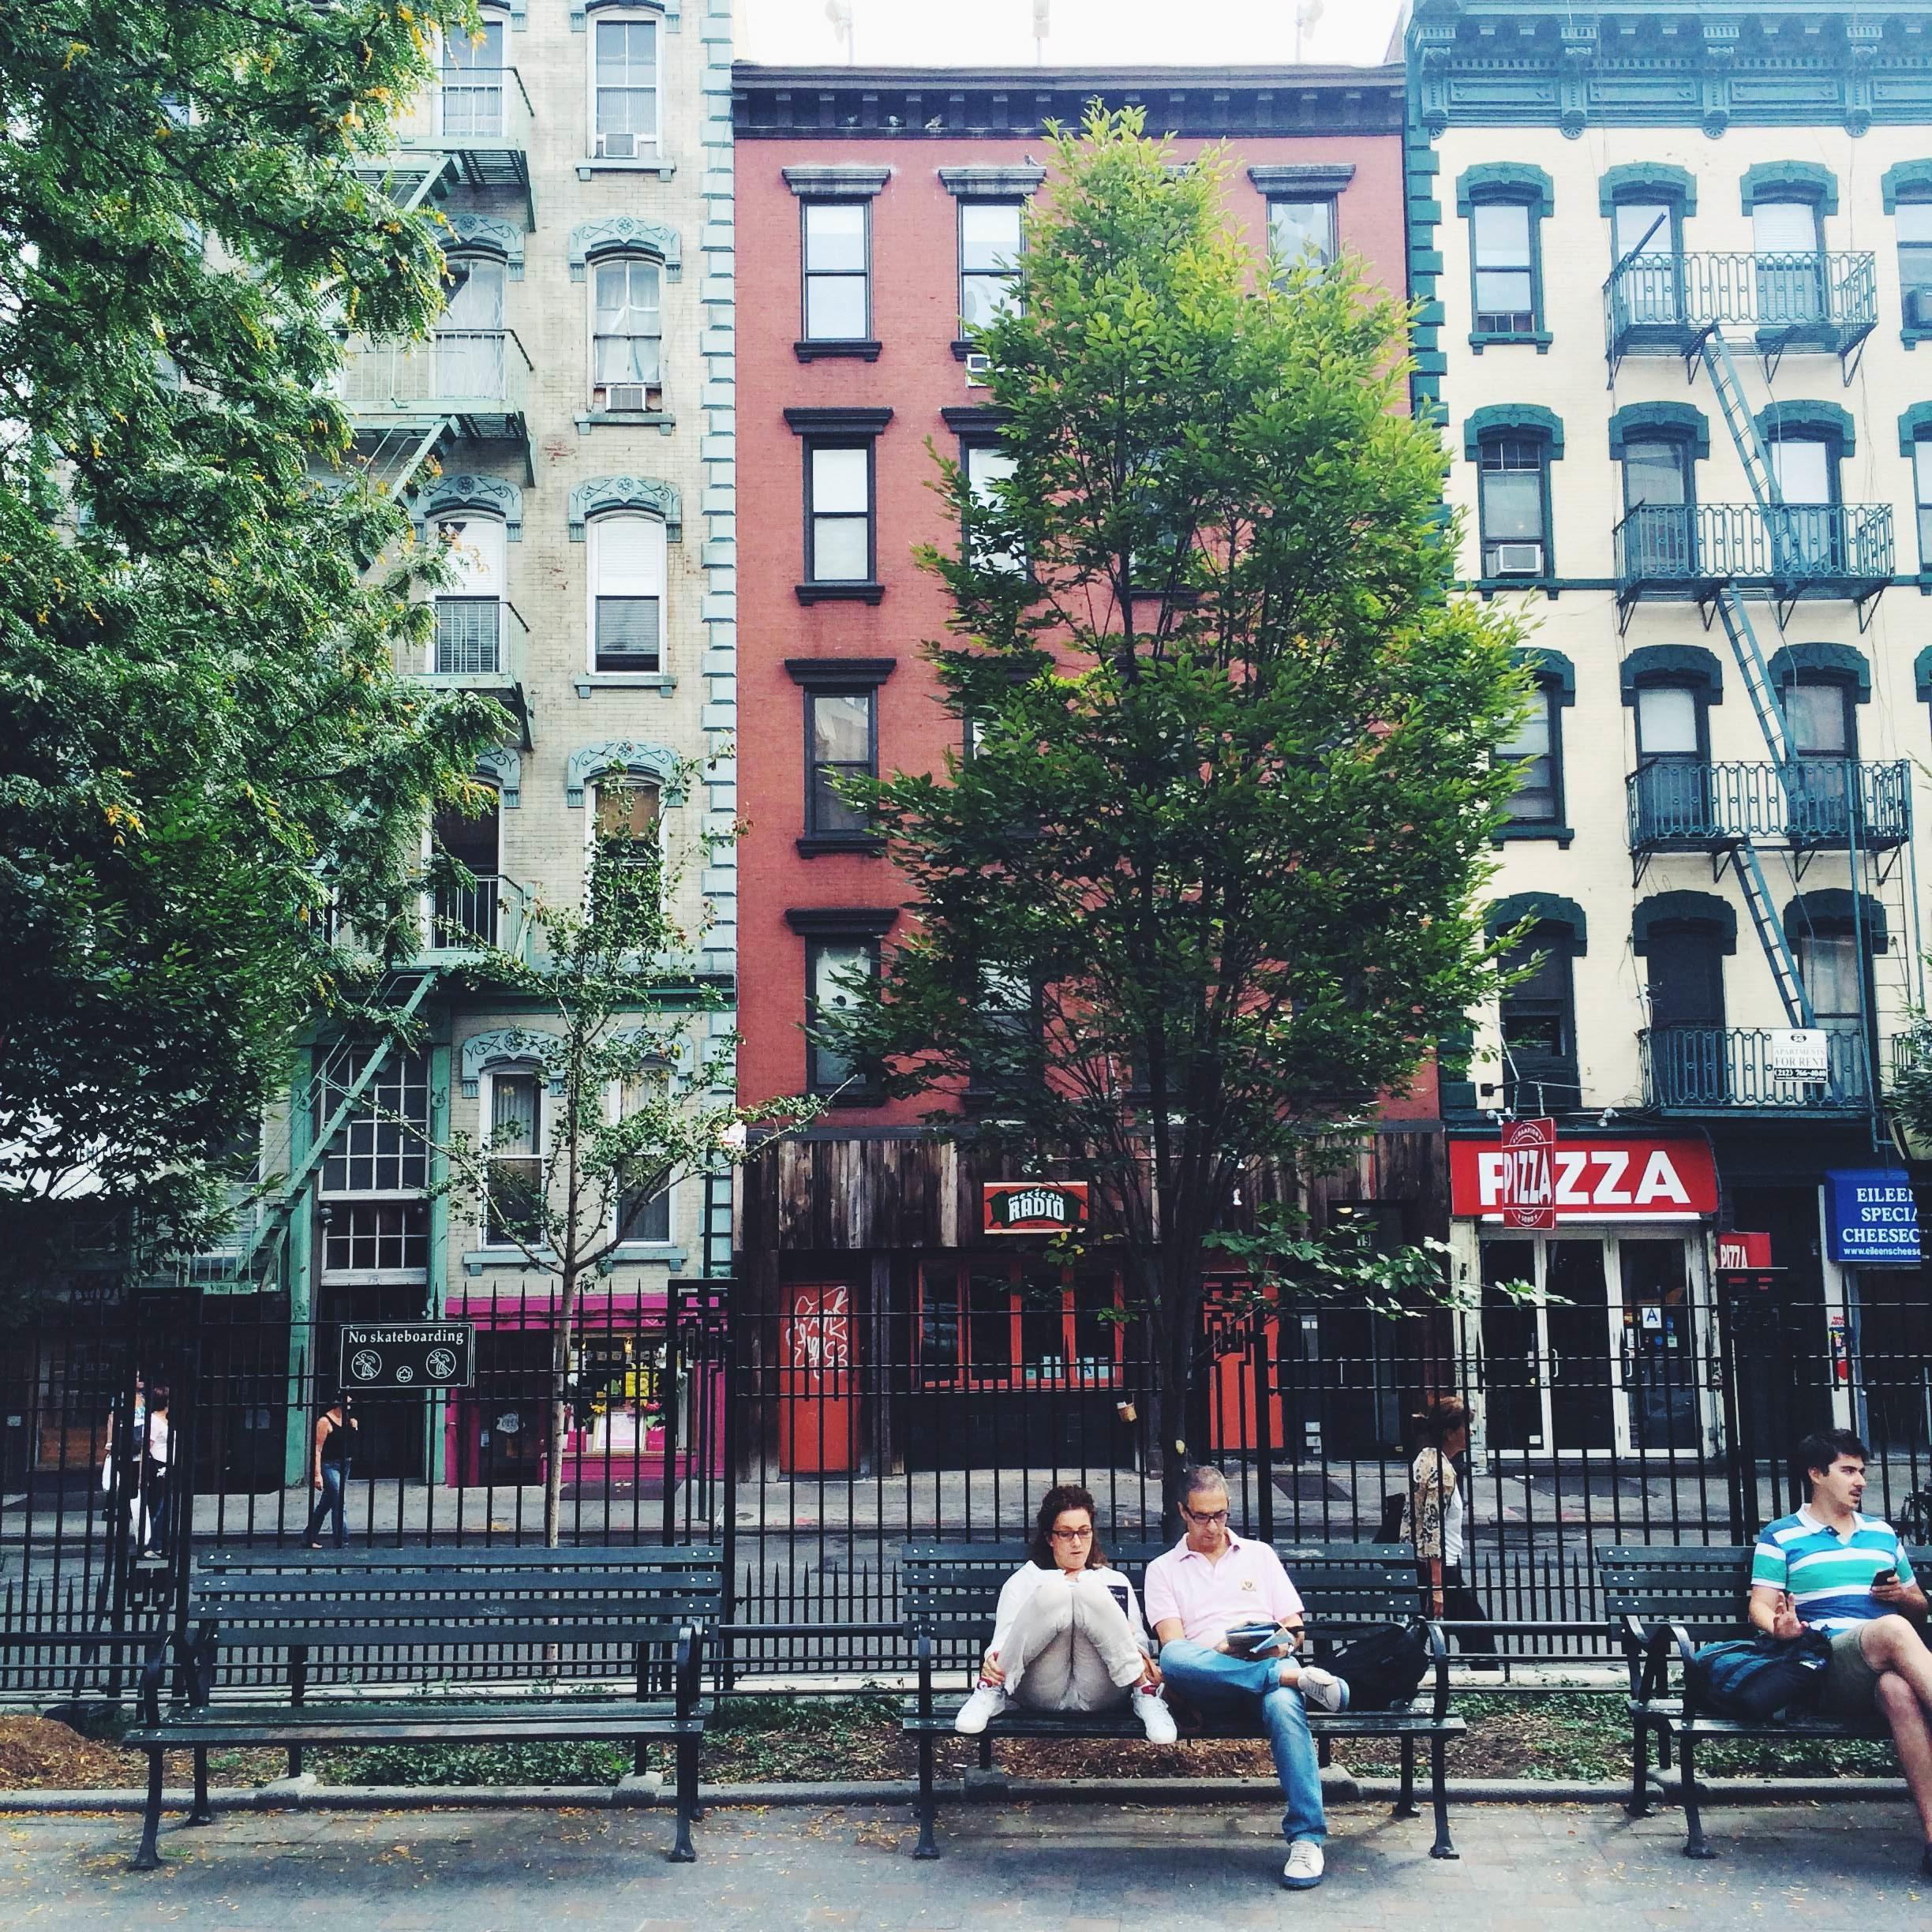 SoHo, New York in September - image 5 - student project